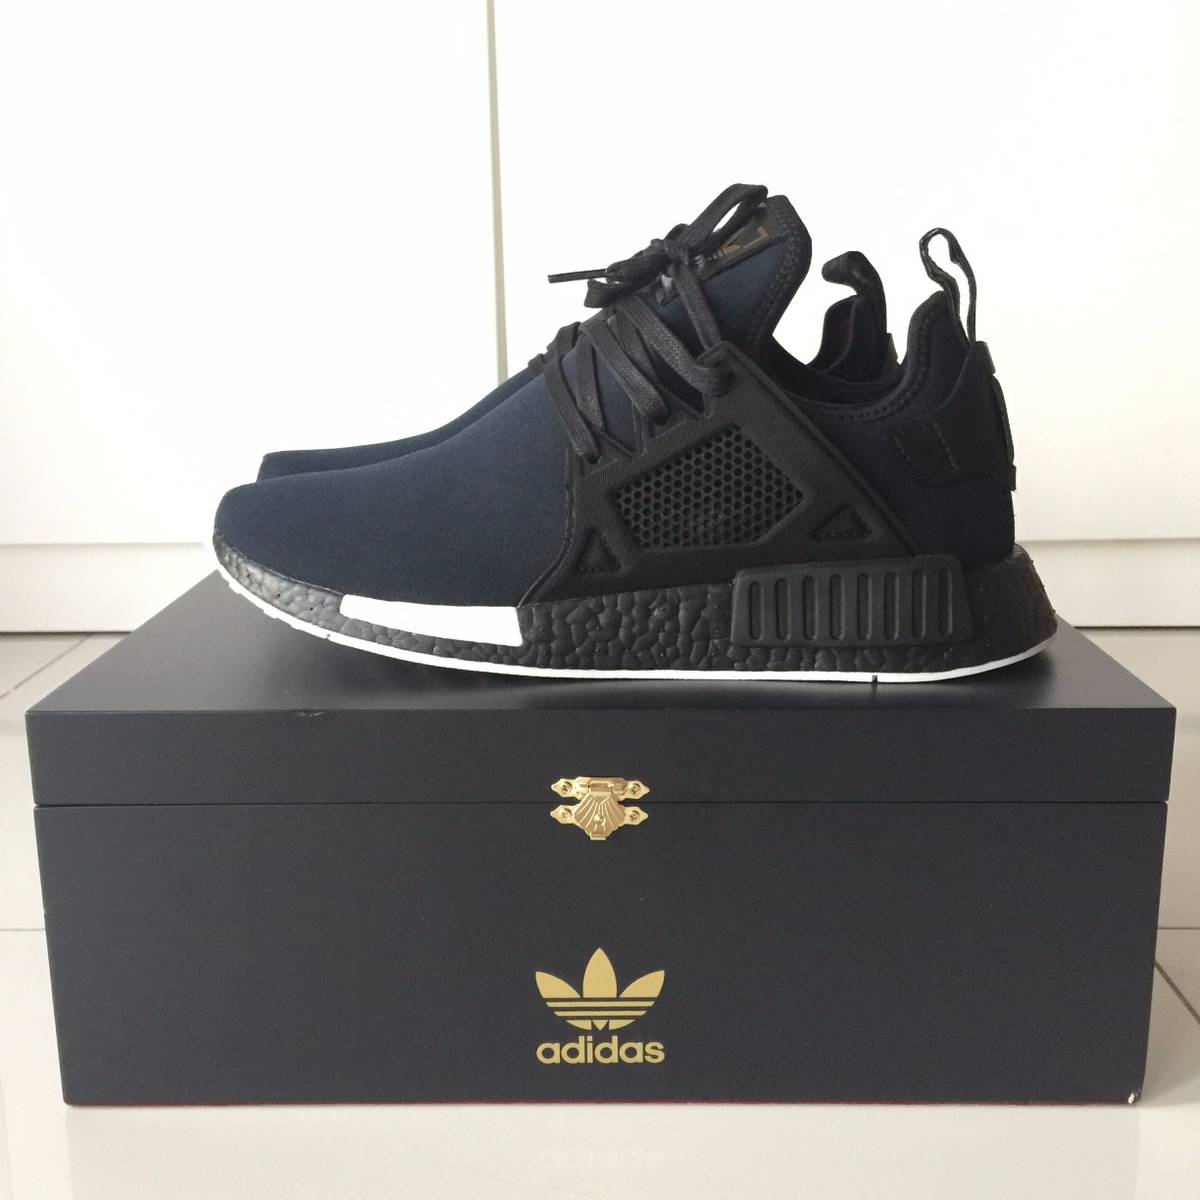 a198ca1f54106 Adidas NMD XR1 PK W Womens Primeknit Boost Shoes